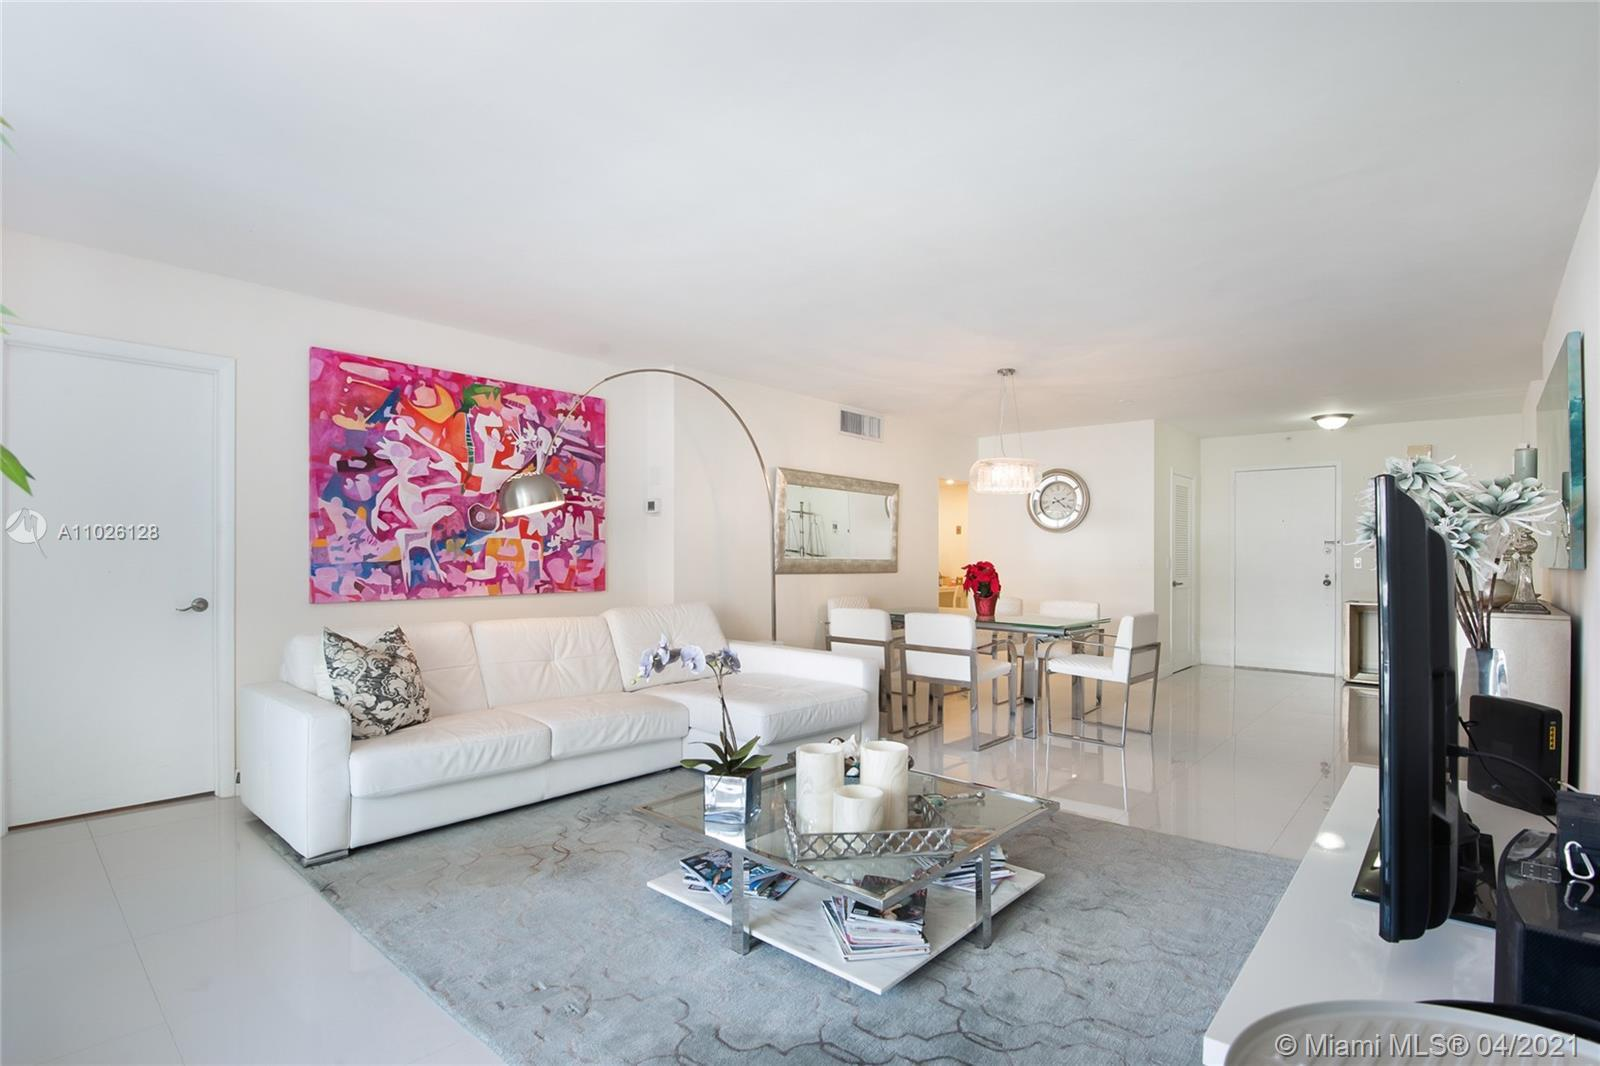 The Balmoral Condo unit 20V, at Bal Harbour Florida 33154, across Bal Harbour Shops, next to The St